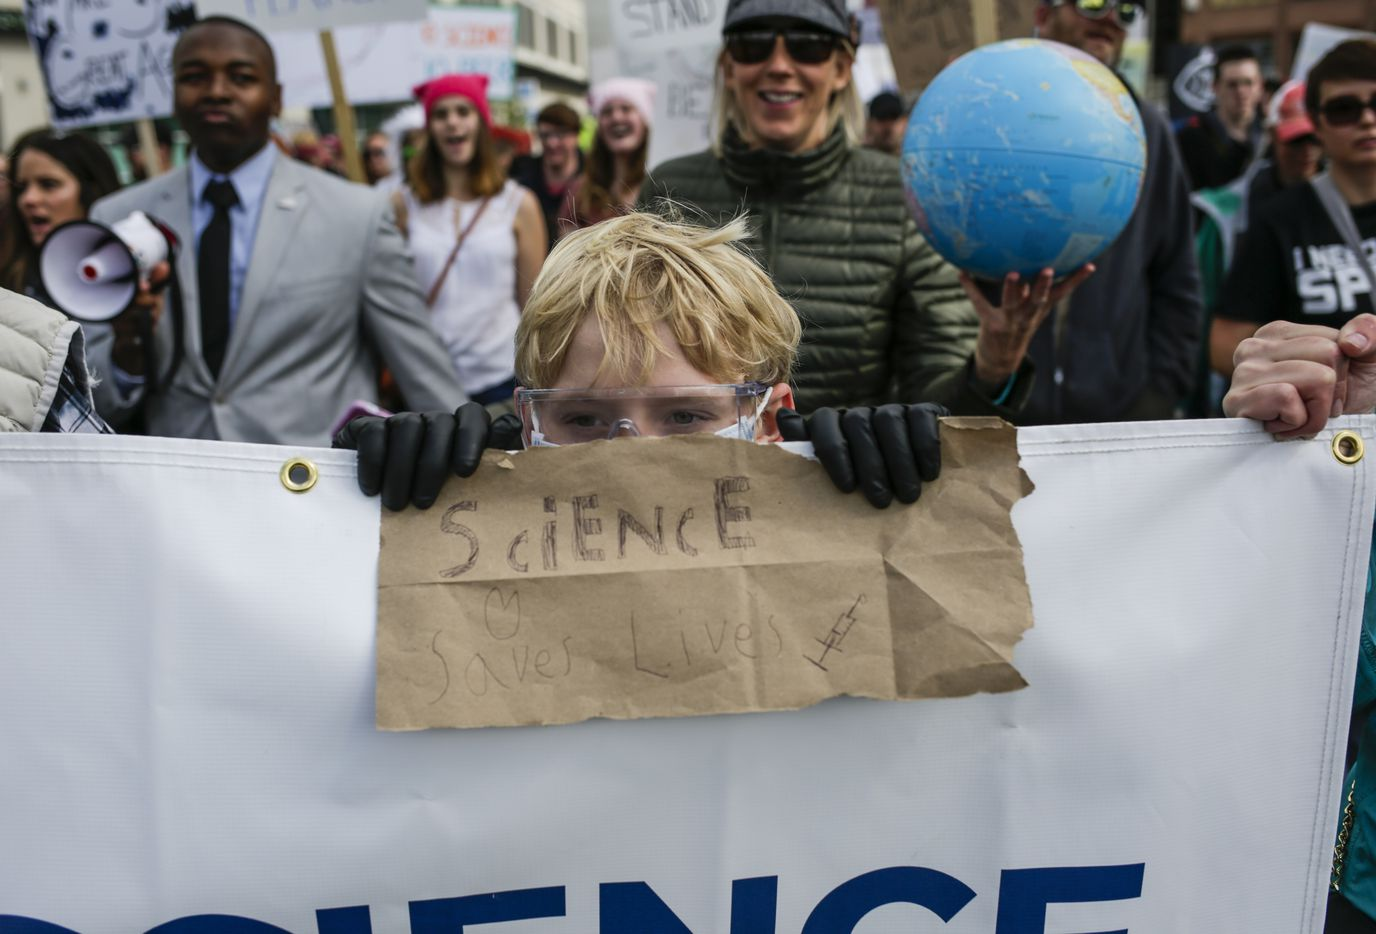 Dylan Sawyer, 12, of Boulder, Colo., during the March for Science in Denver, April 22, 2017. Thousands of scientists and science advocates demonstrated in Washington and in smaller events around the world to support, defend and celebrate the scientific enterprise. (Nick Cote/The New York Times)